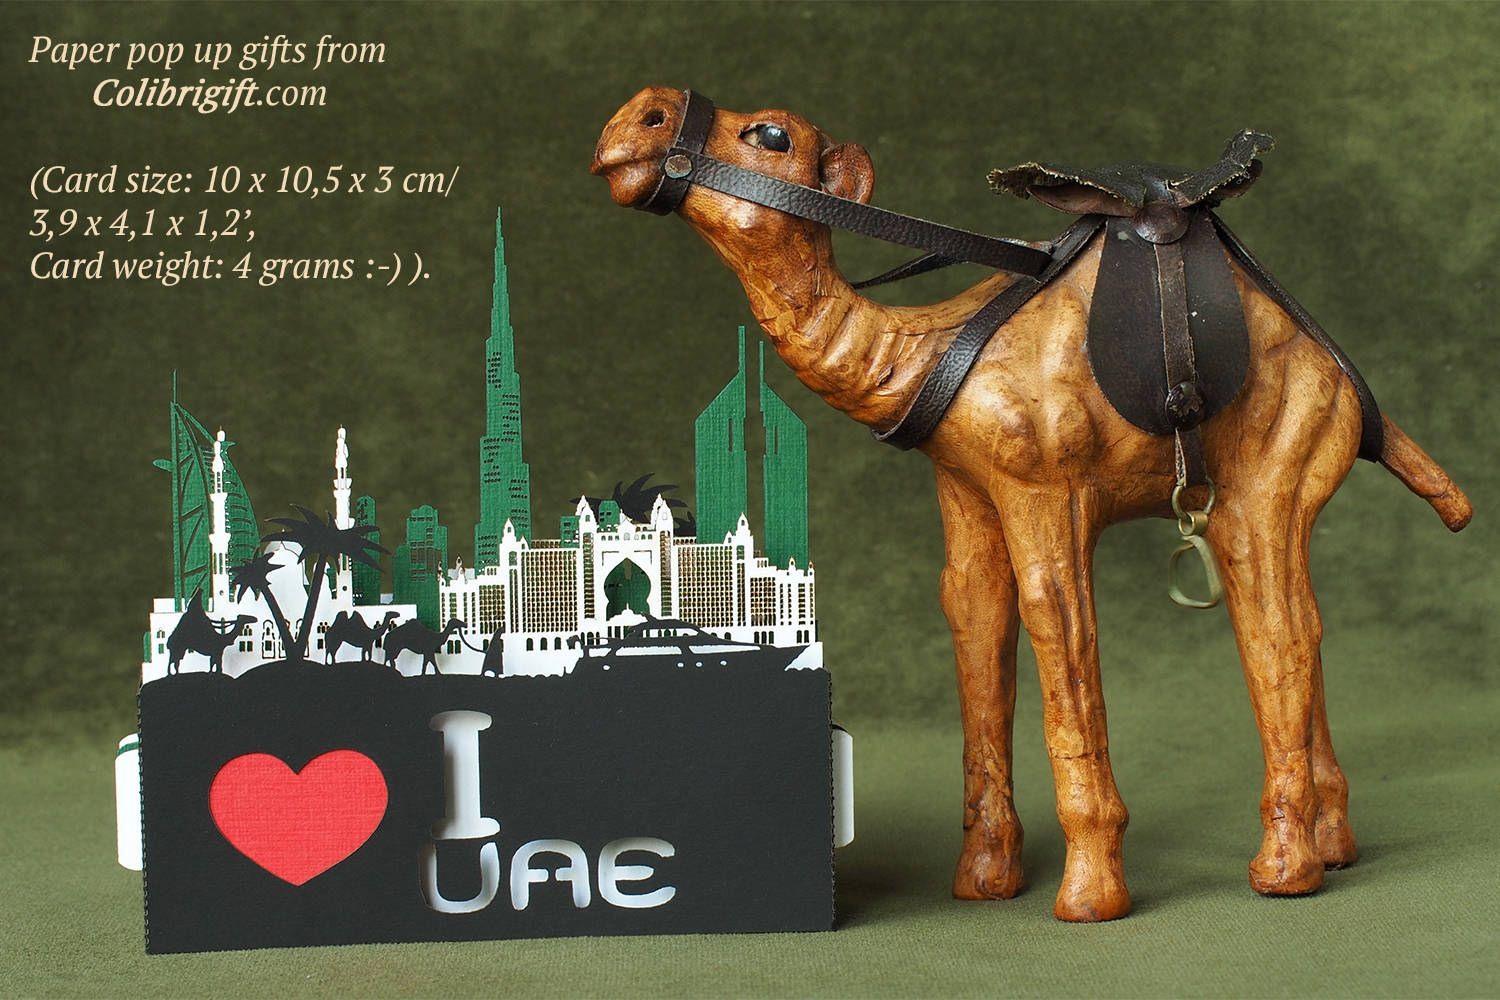 Uae gifts pop up cards united arab emirates abu dhabi dubai arabic uae gifts pop up cards united arab emirates abu dhabi dubai negle Gallery